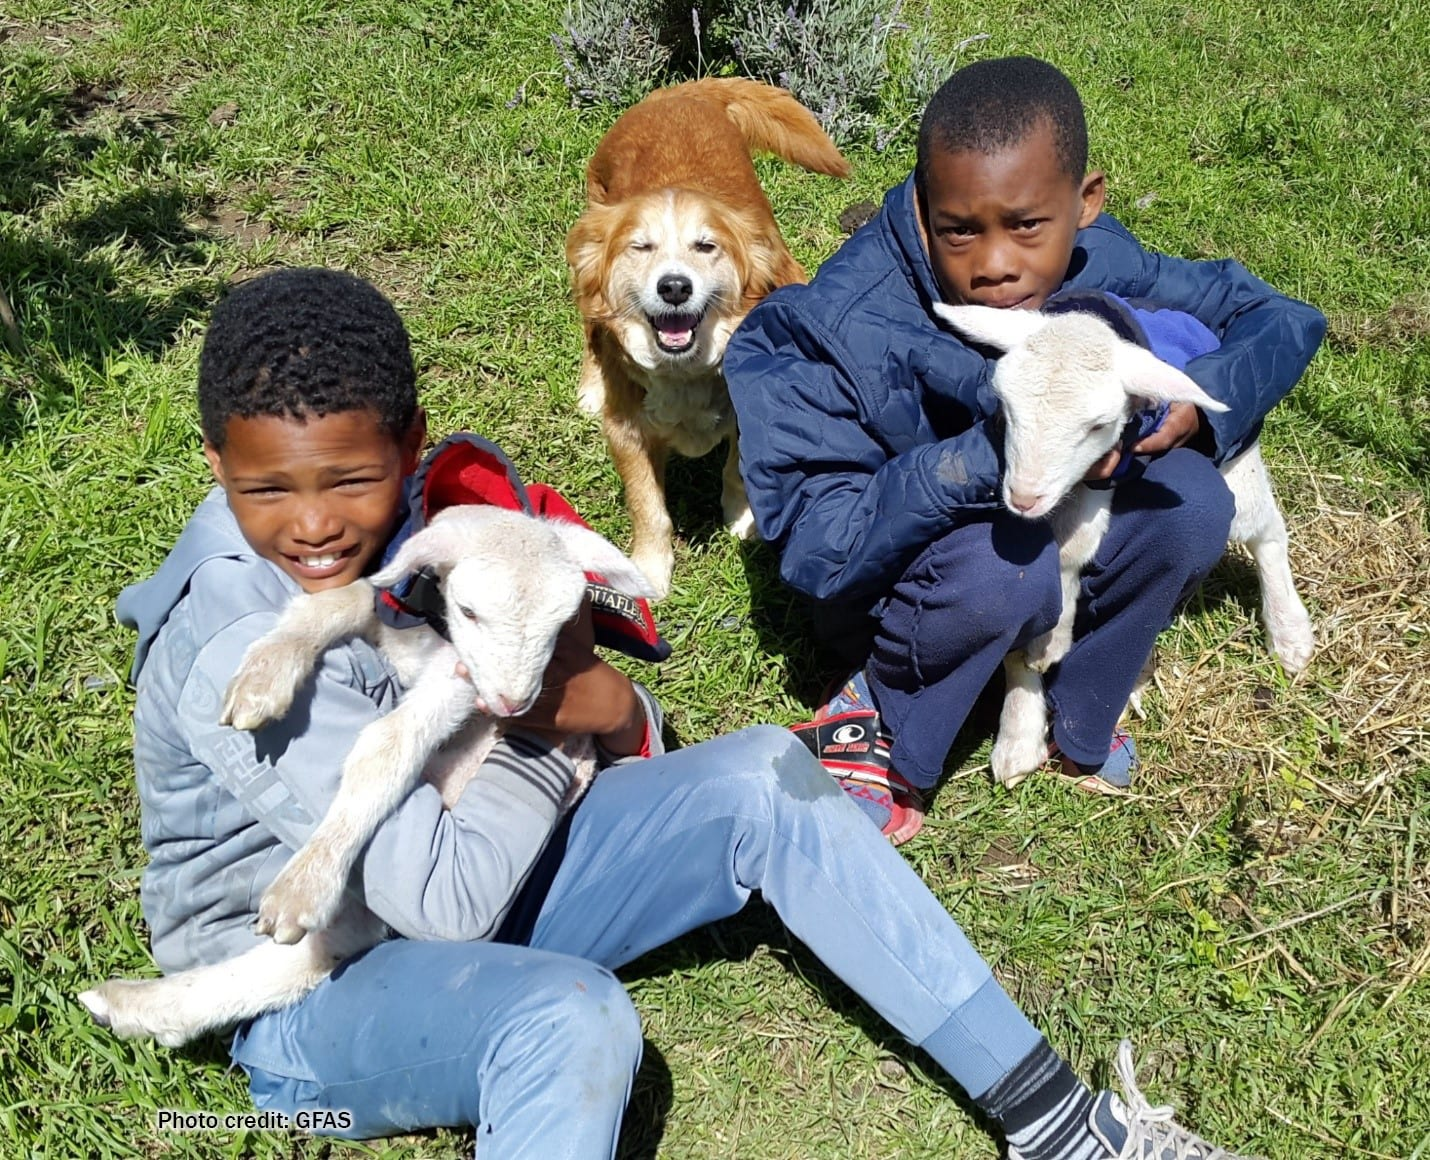 Children with dogs | Photo credit: GFAS